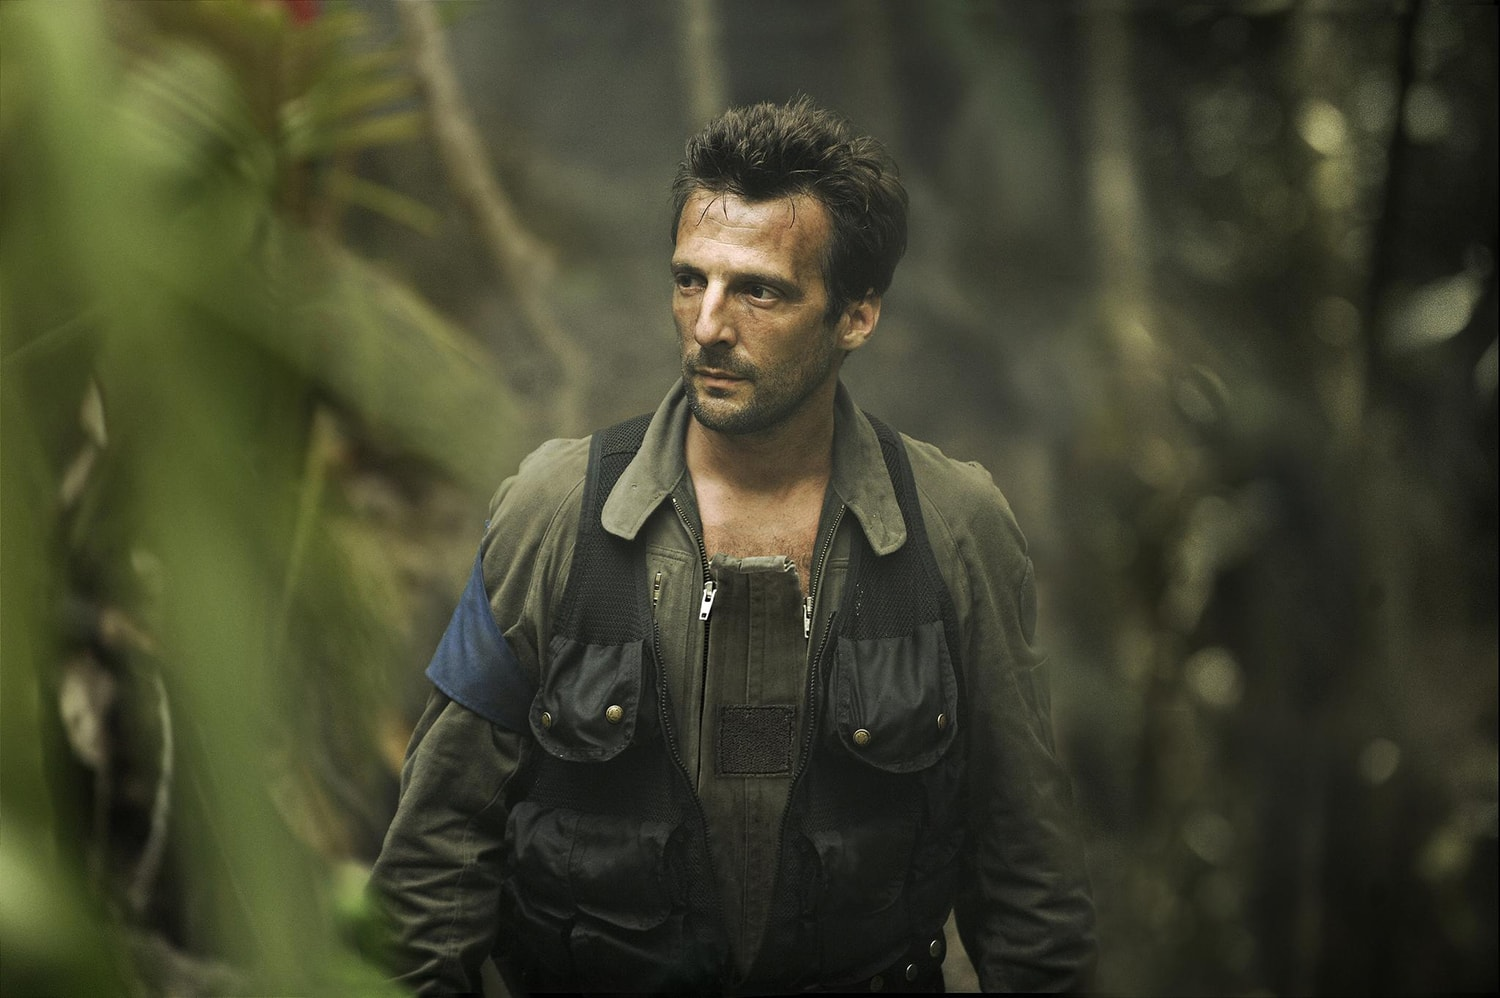 Matthieu Kassovitz, Rebellion